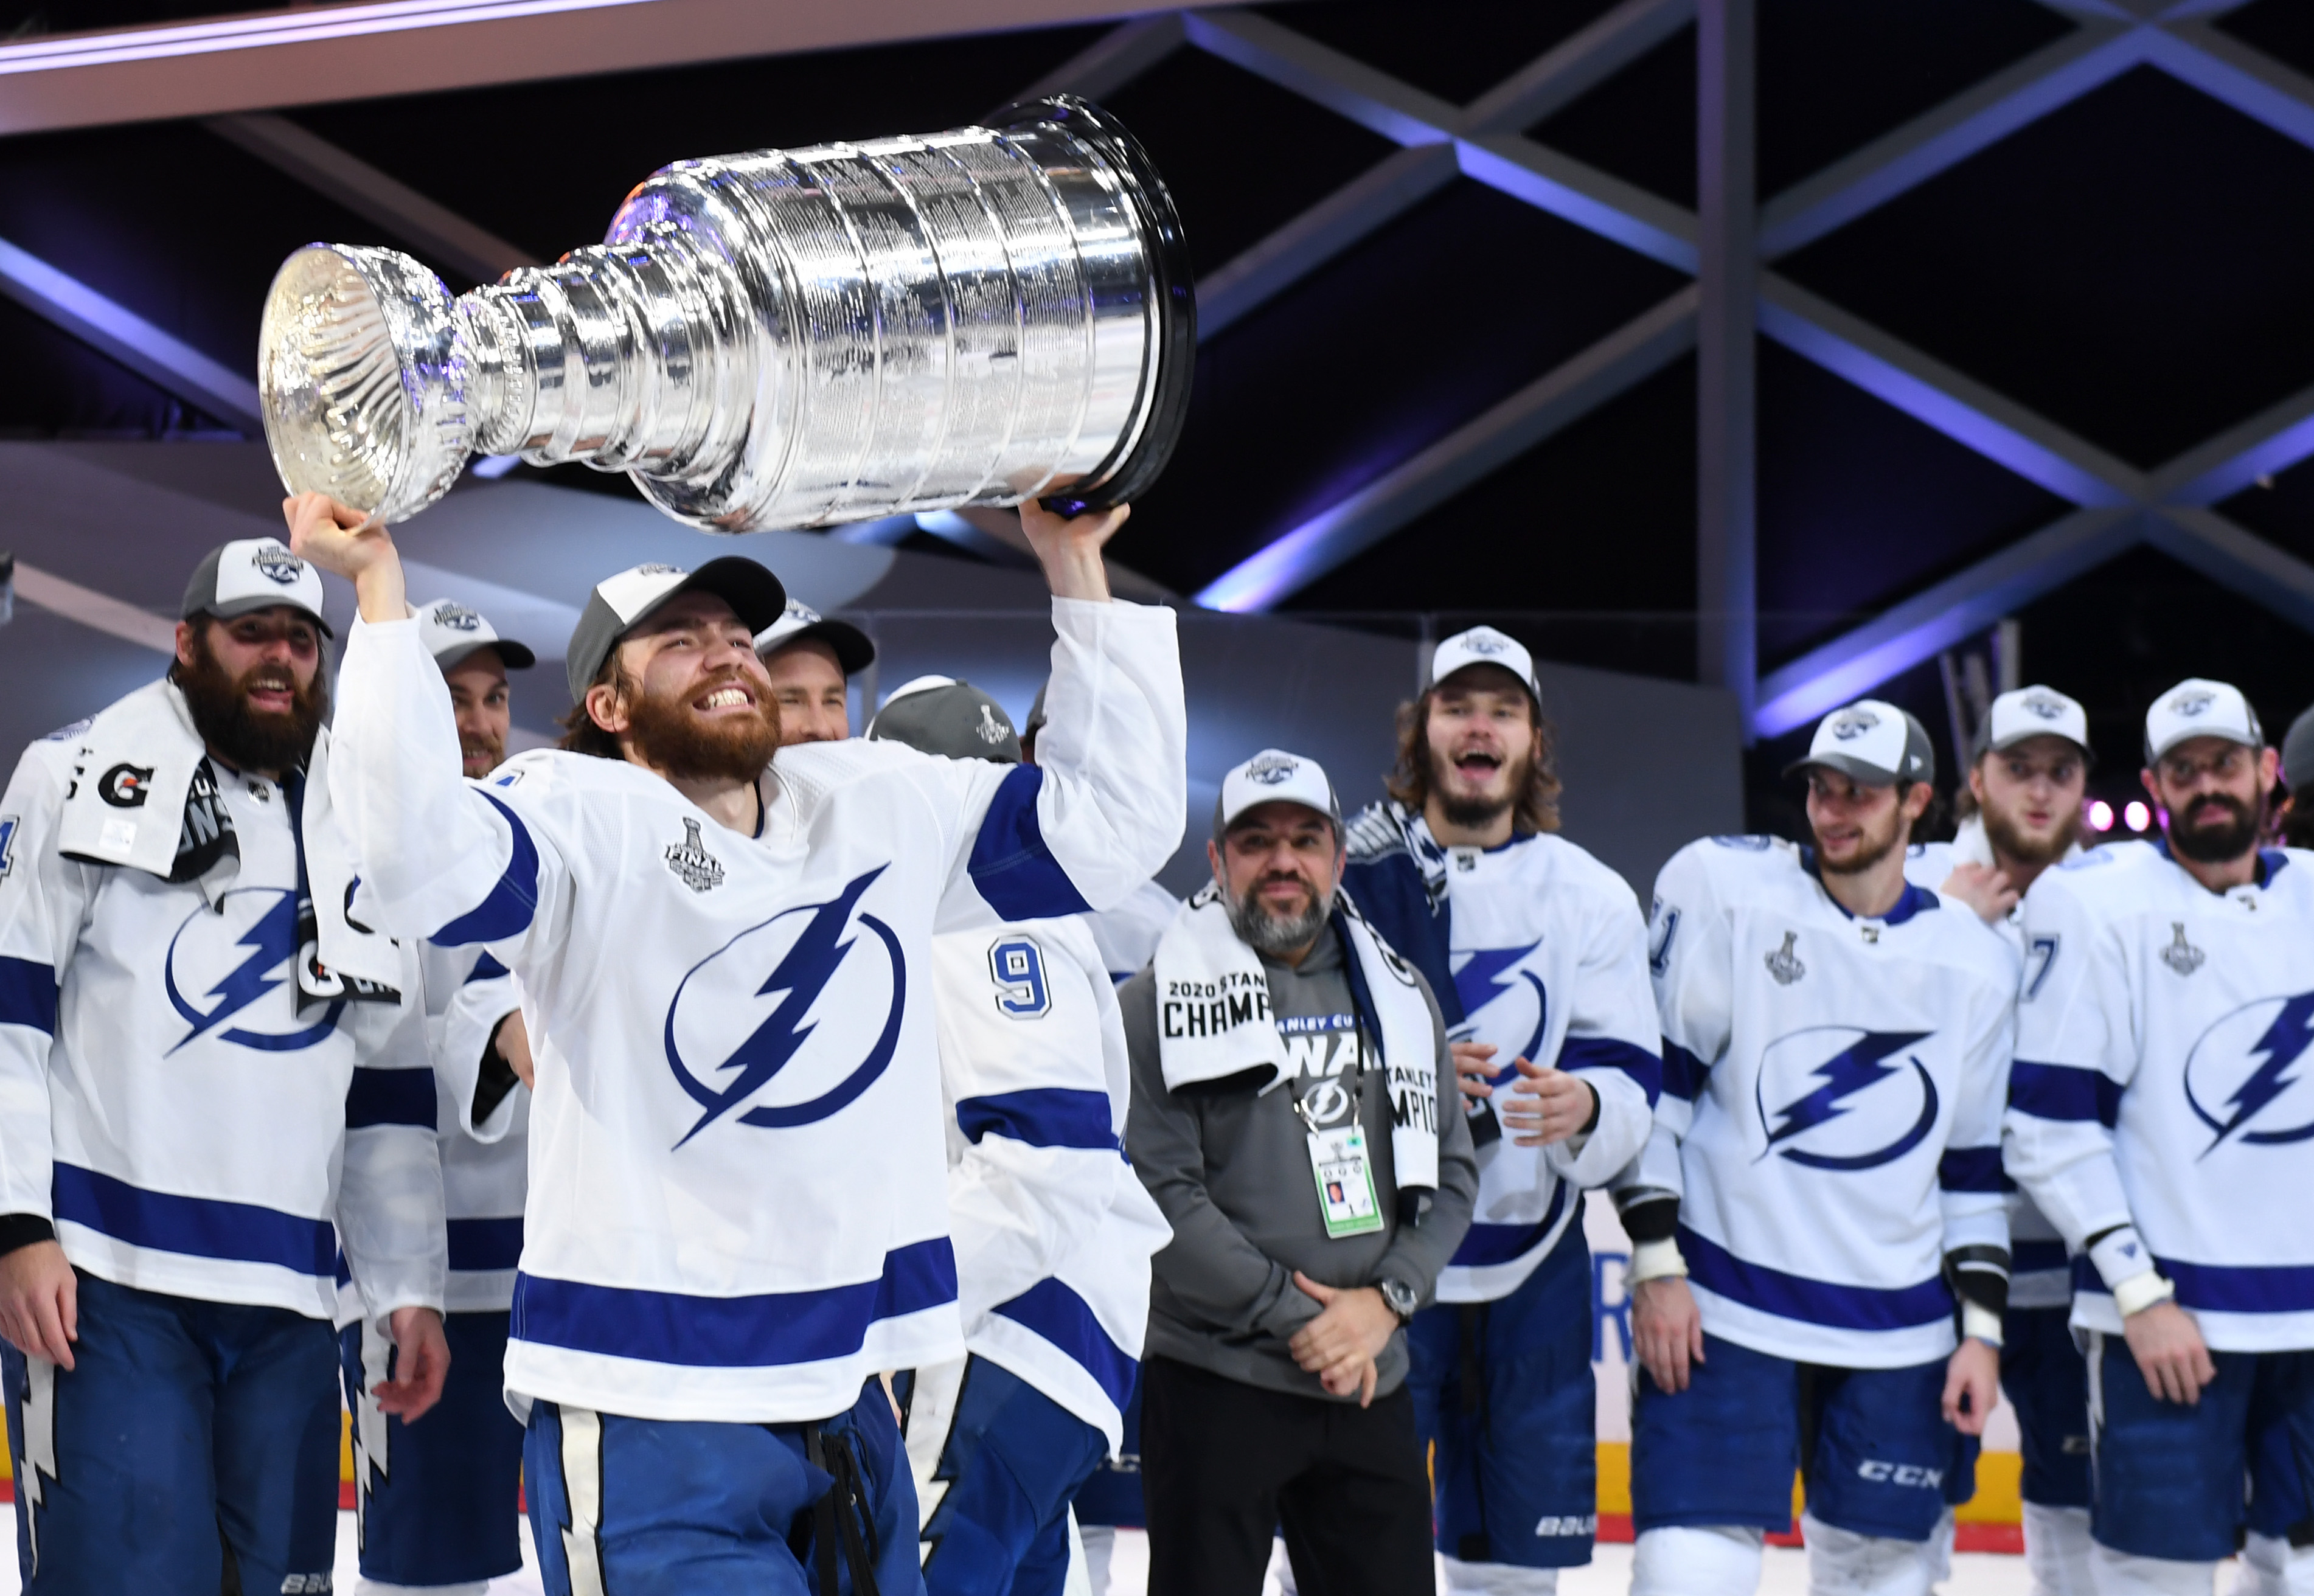 Lightning Beat Stars to Win 2nd Stanley Cup in Franchise History